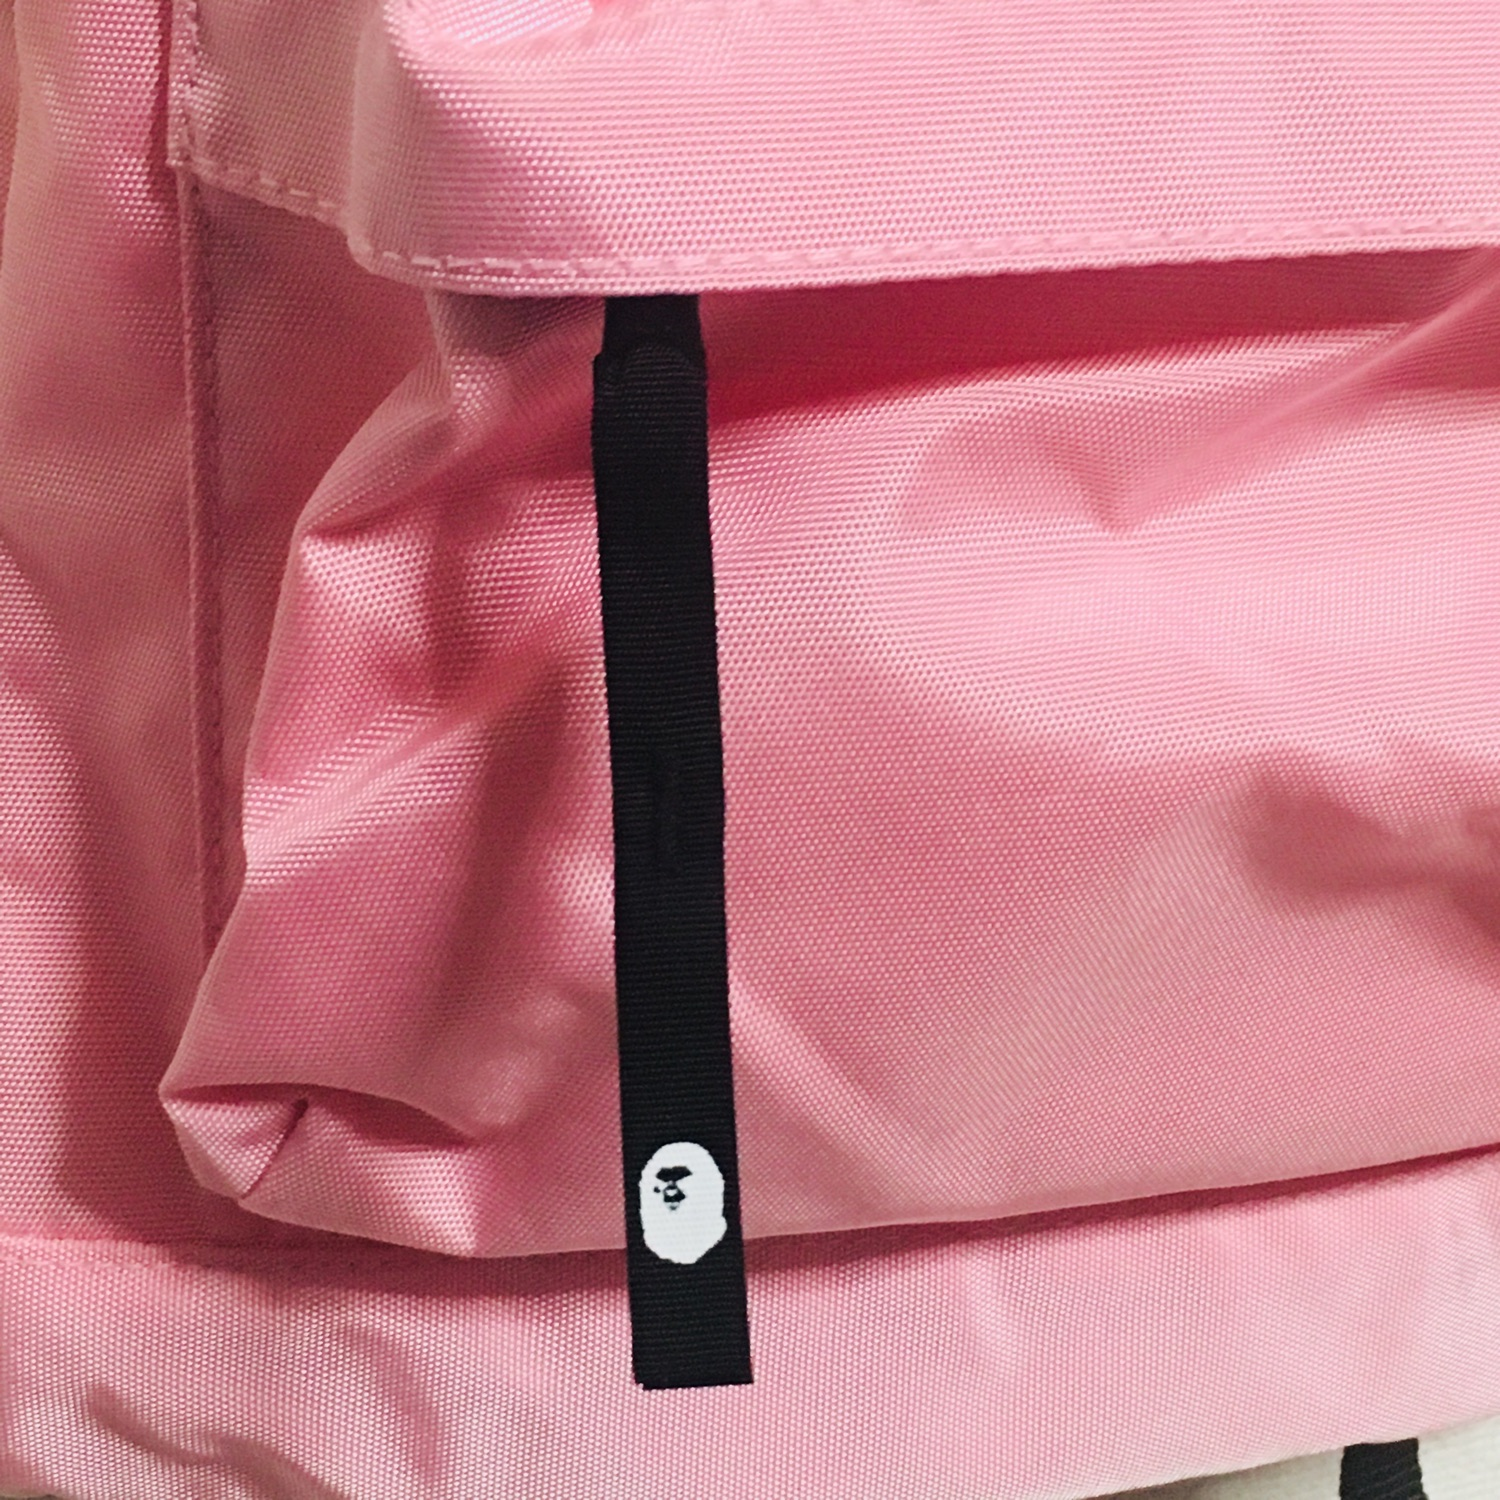 Bape Backpack Baby Milo Cotton Candy Pink Book Bag